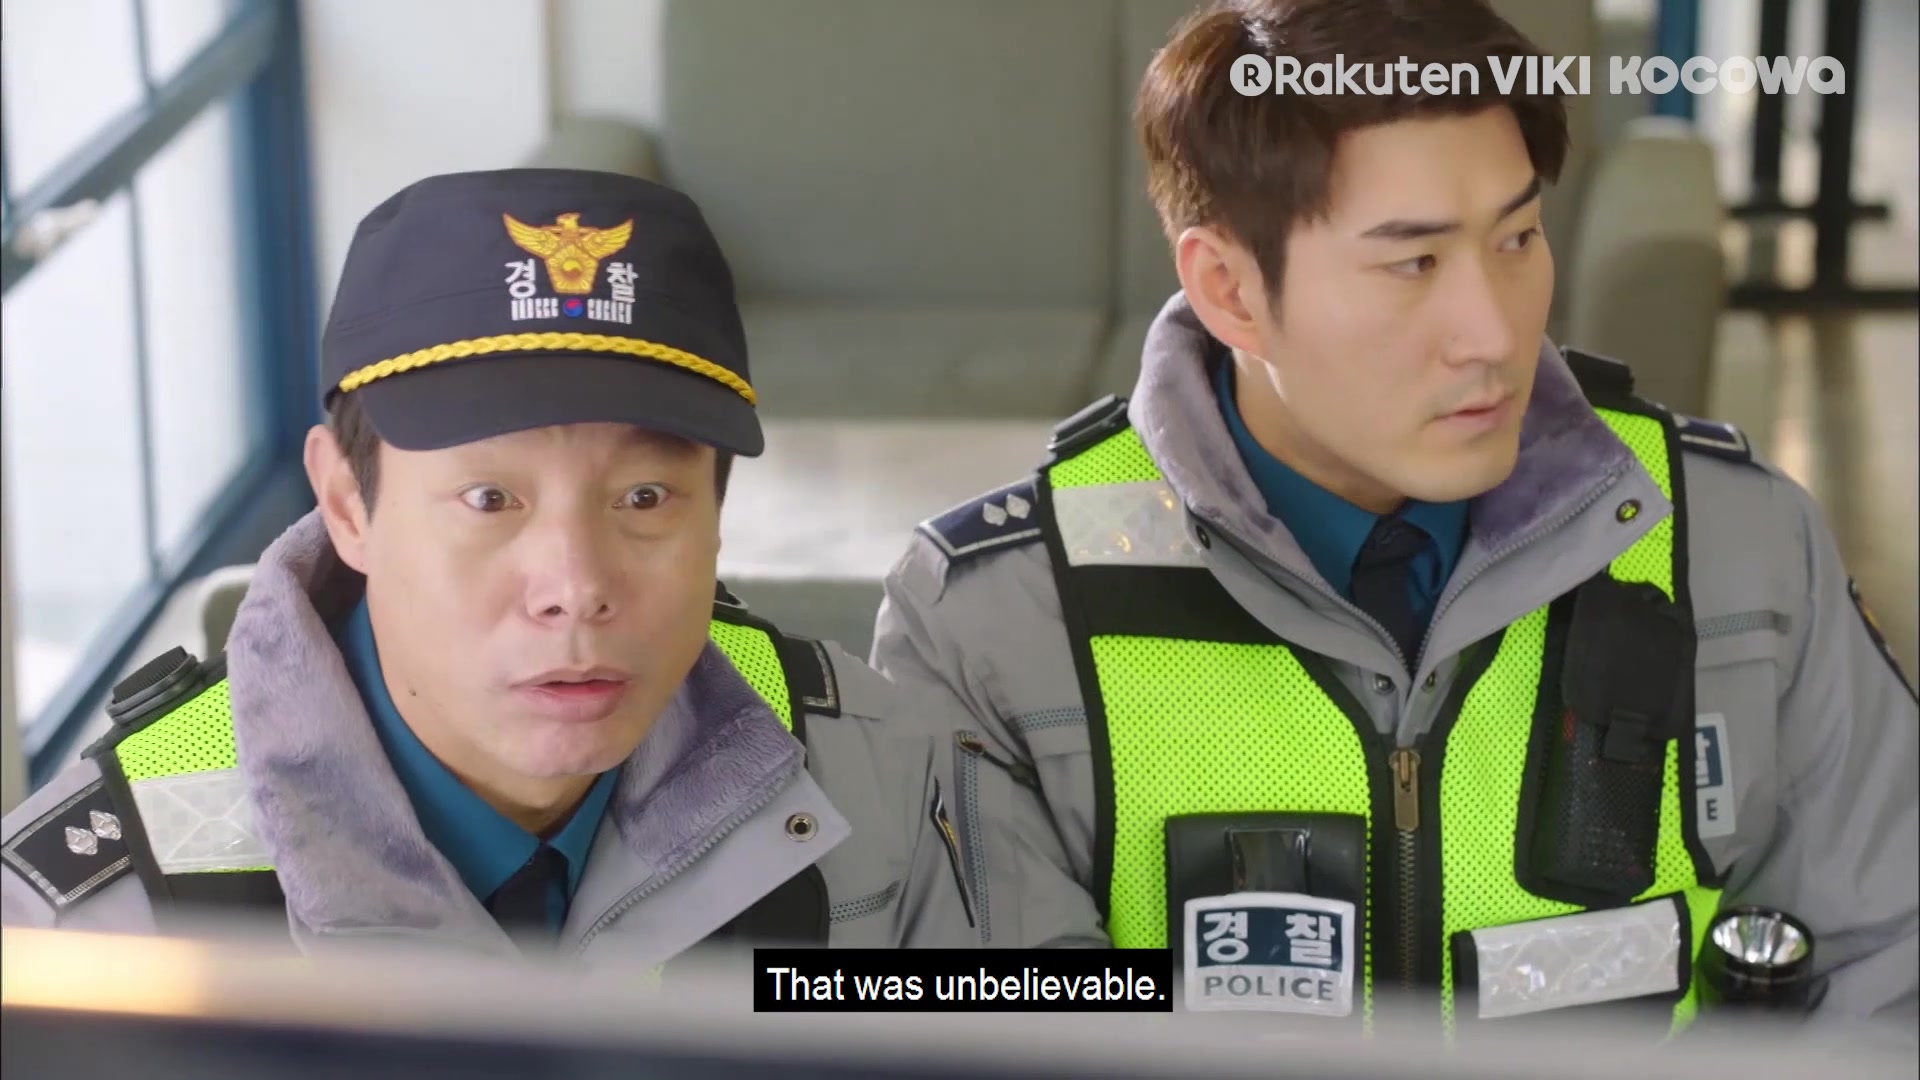 Episode 1 Highlight: Queen of Mystery 2